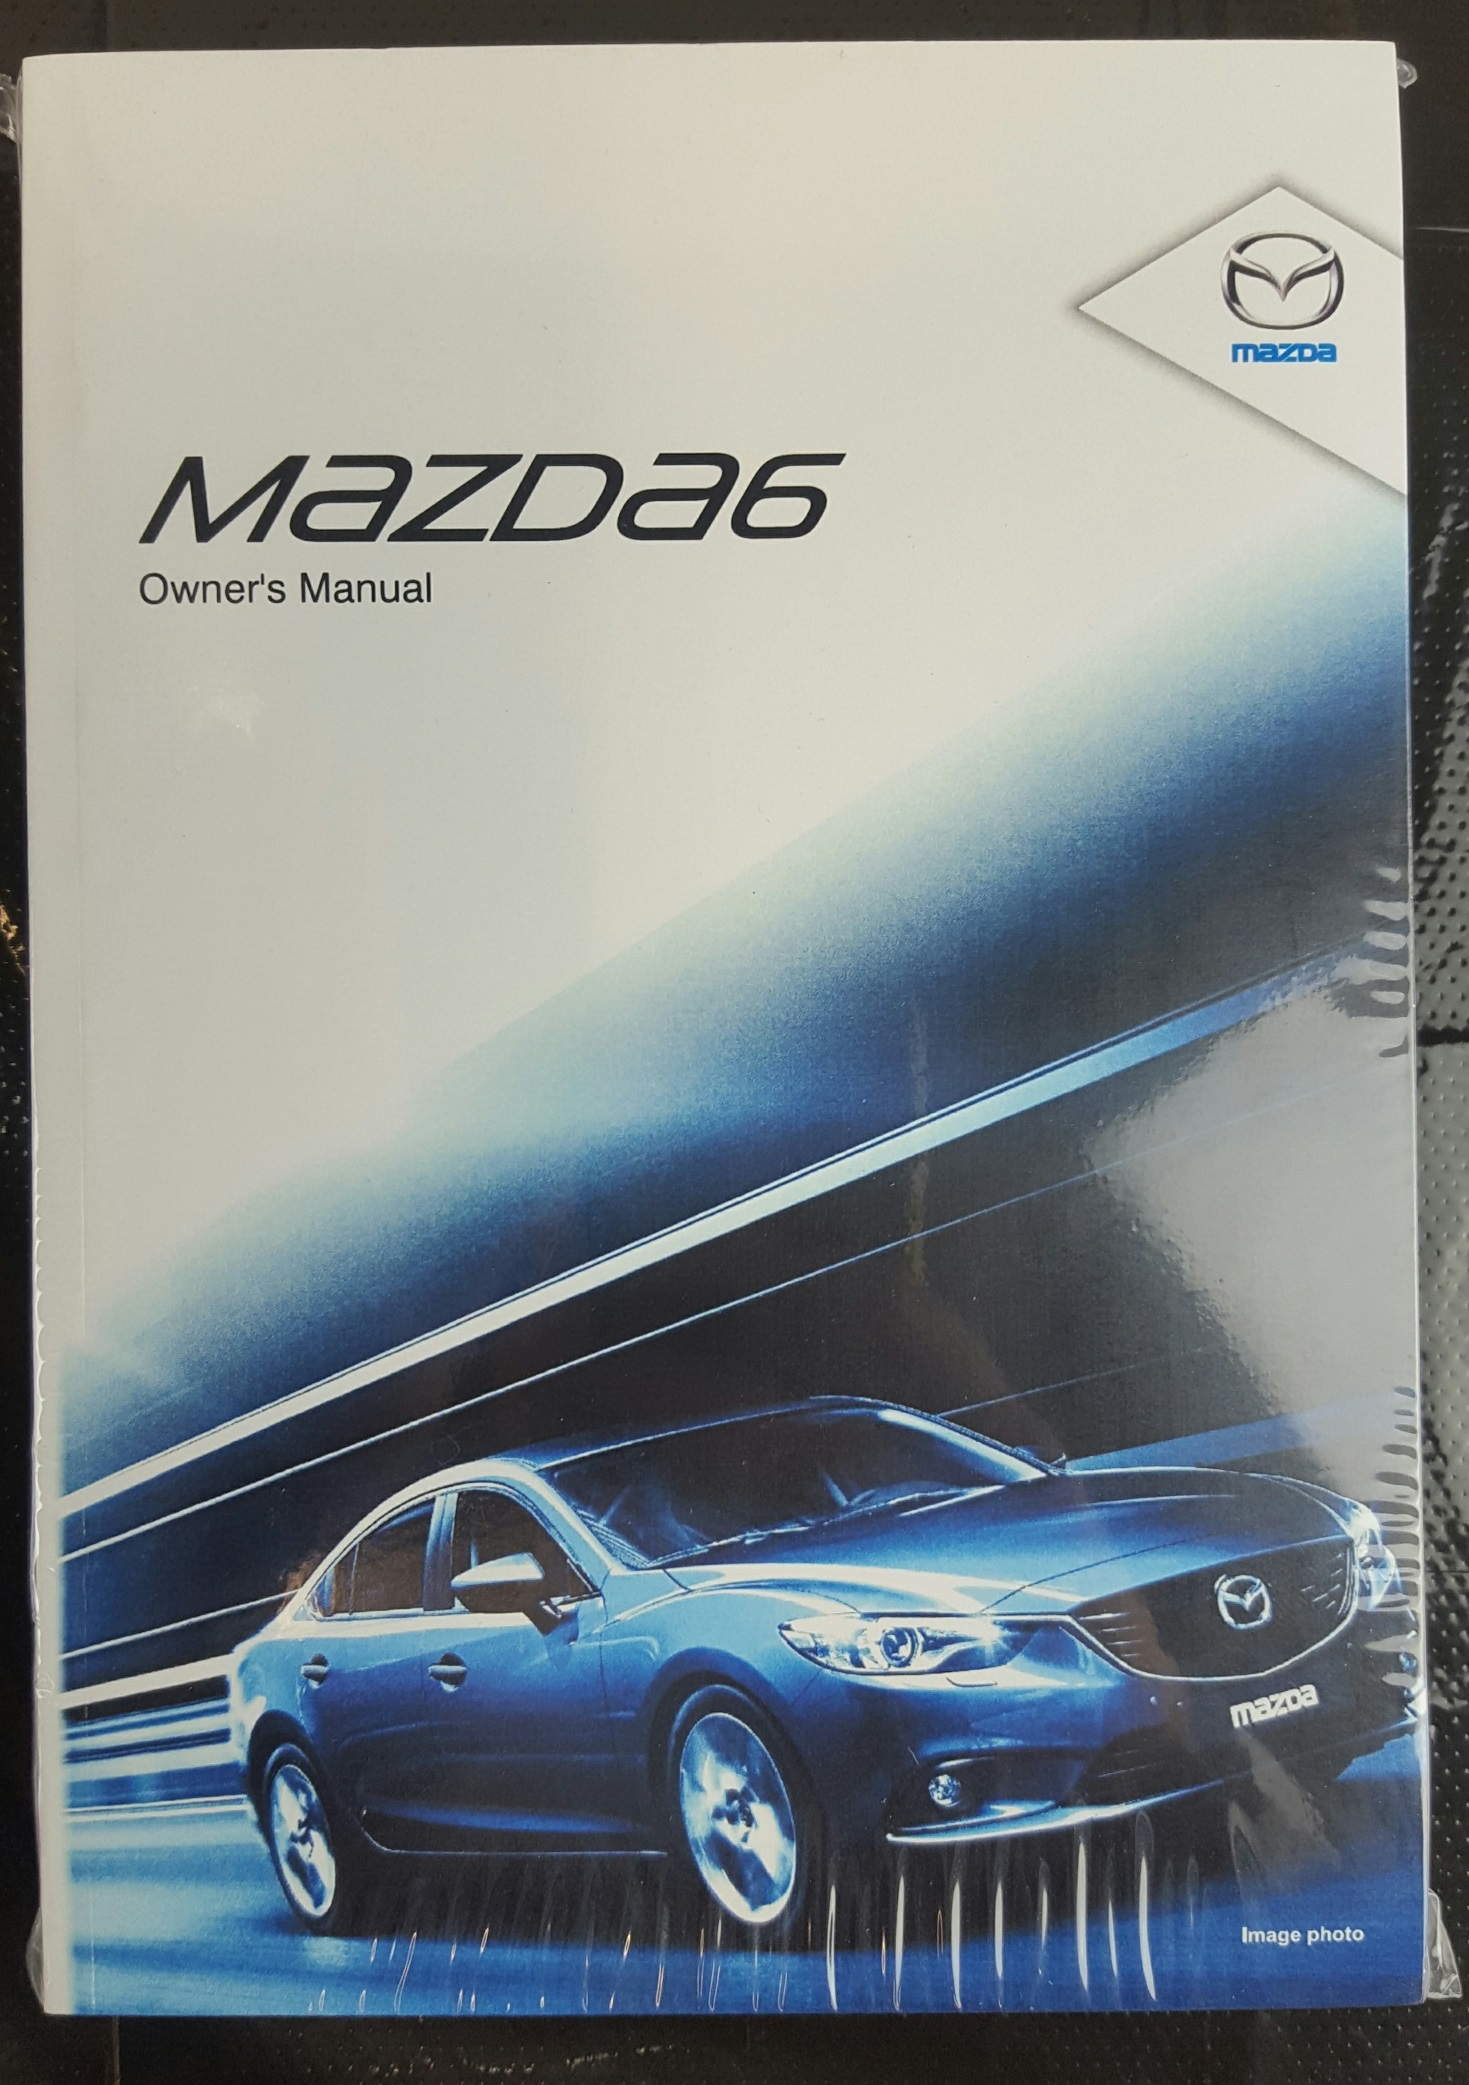 details about new genuine mazda 6 gj series 1 owners manual mazda6 2012 2016 rh ebay com au owners manual mazda 6 2006 owners manual mazda 626 1997